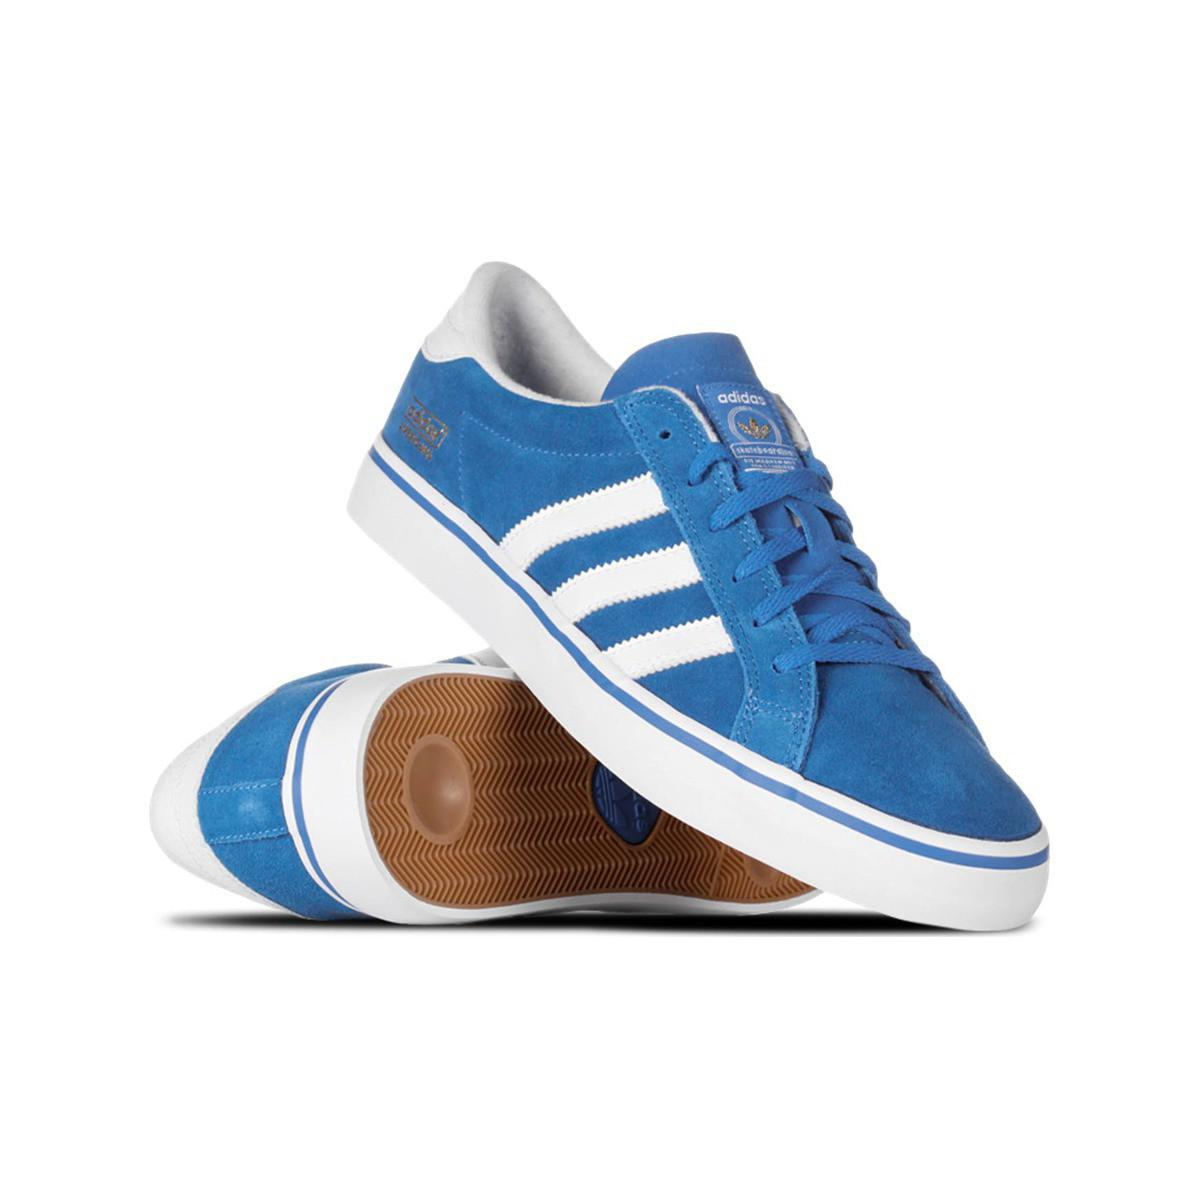 56af21dff Adidas Americana Vin Low Men s Shoes (trainers) In Blue in Blue for ...